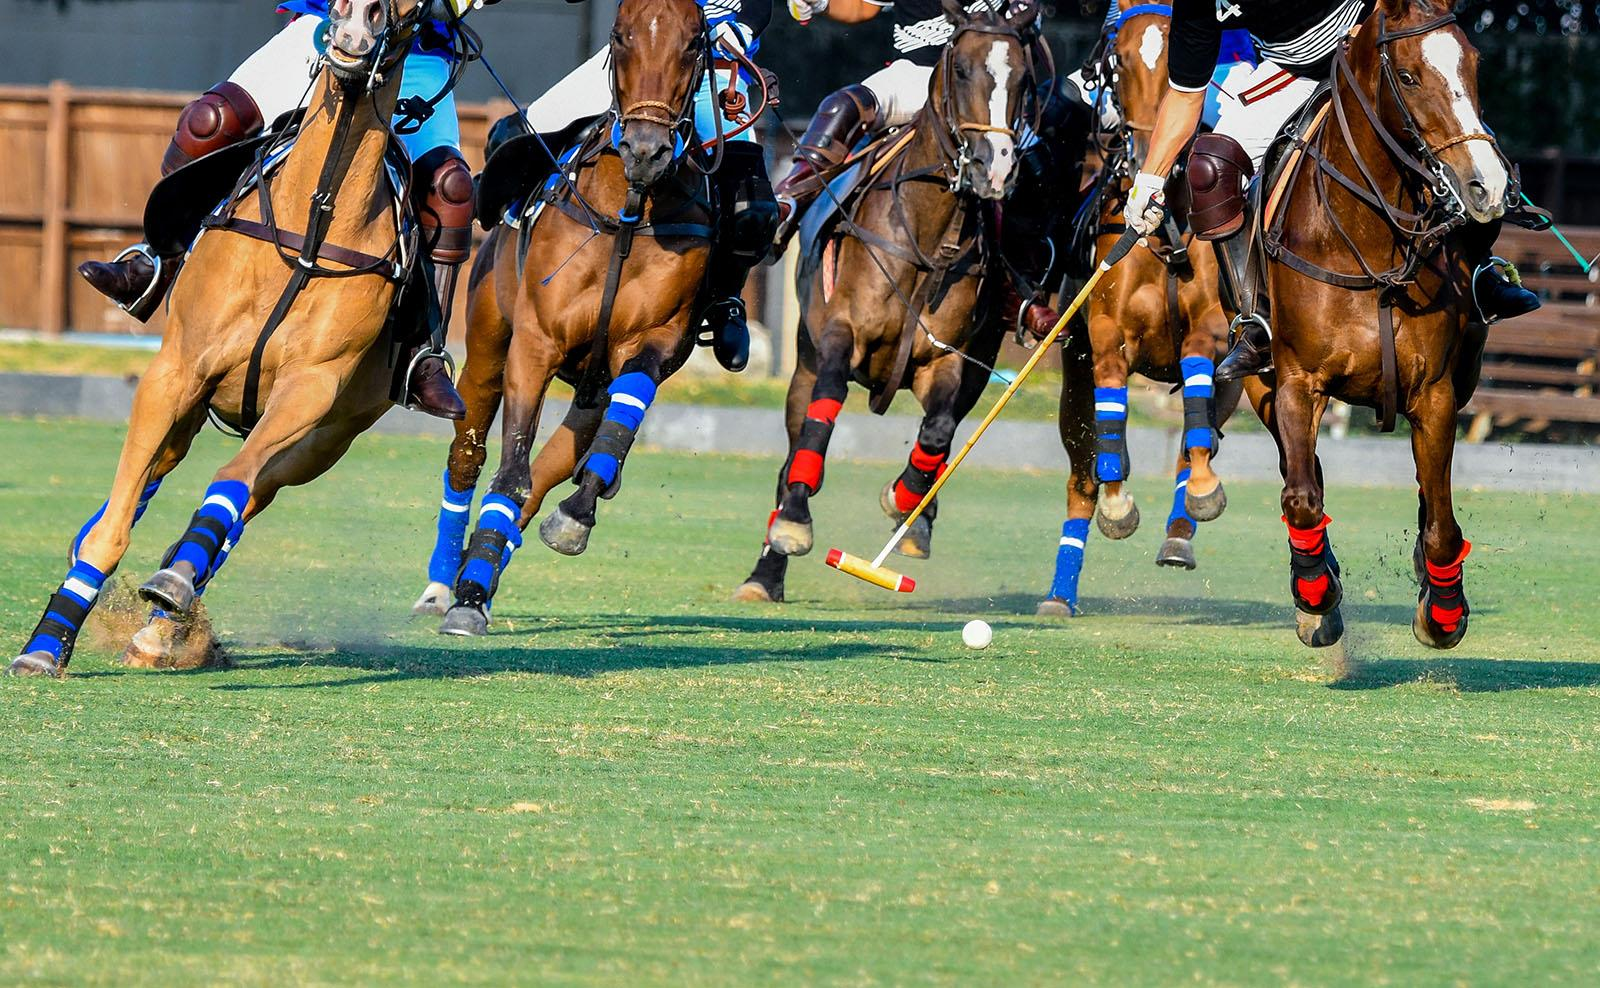 close up of horses in polo match